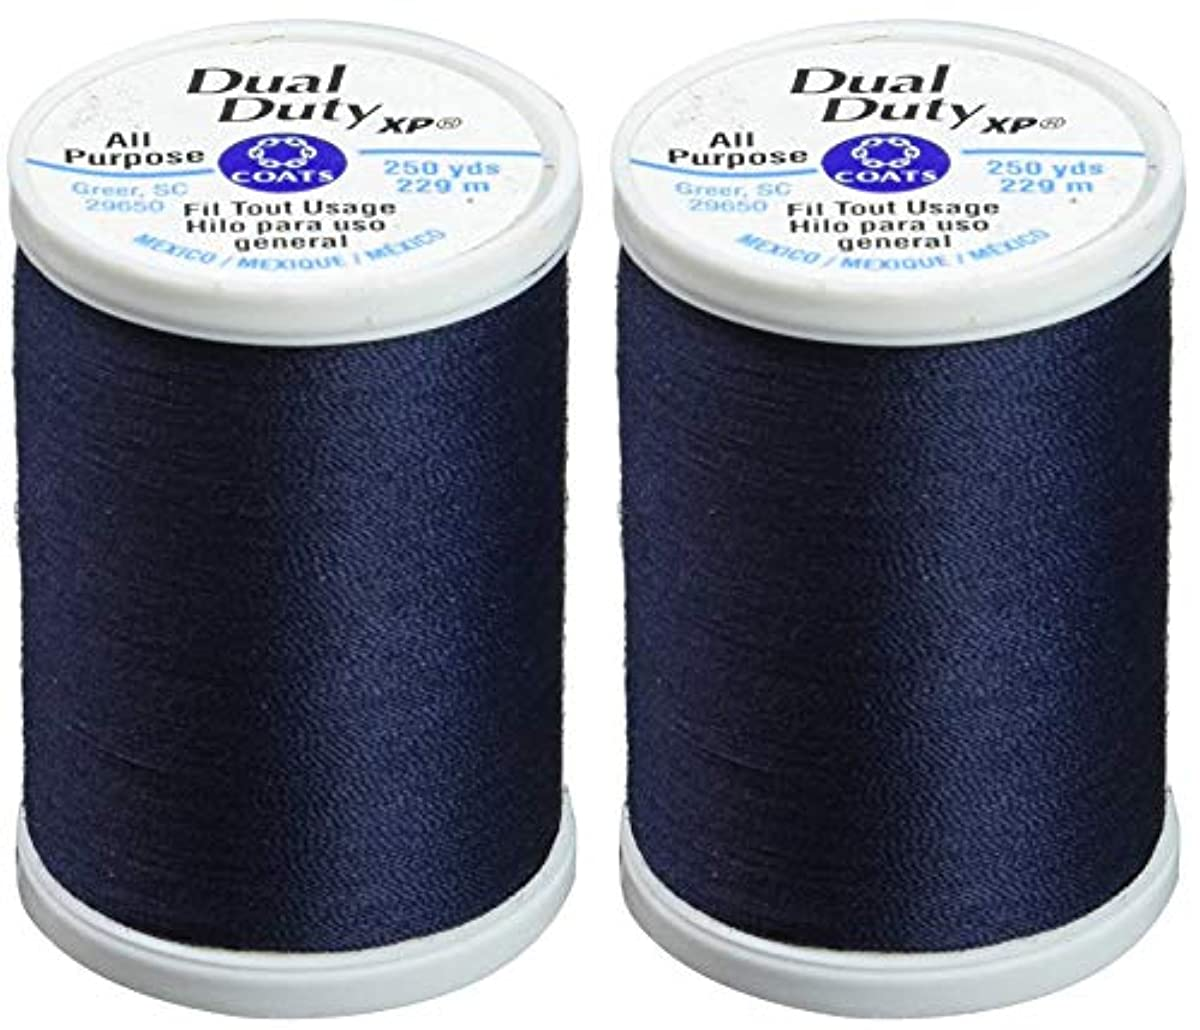 Dual Duty XP General Purpose Thread 250yds Navy (S910-4900)